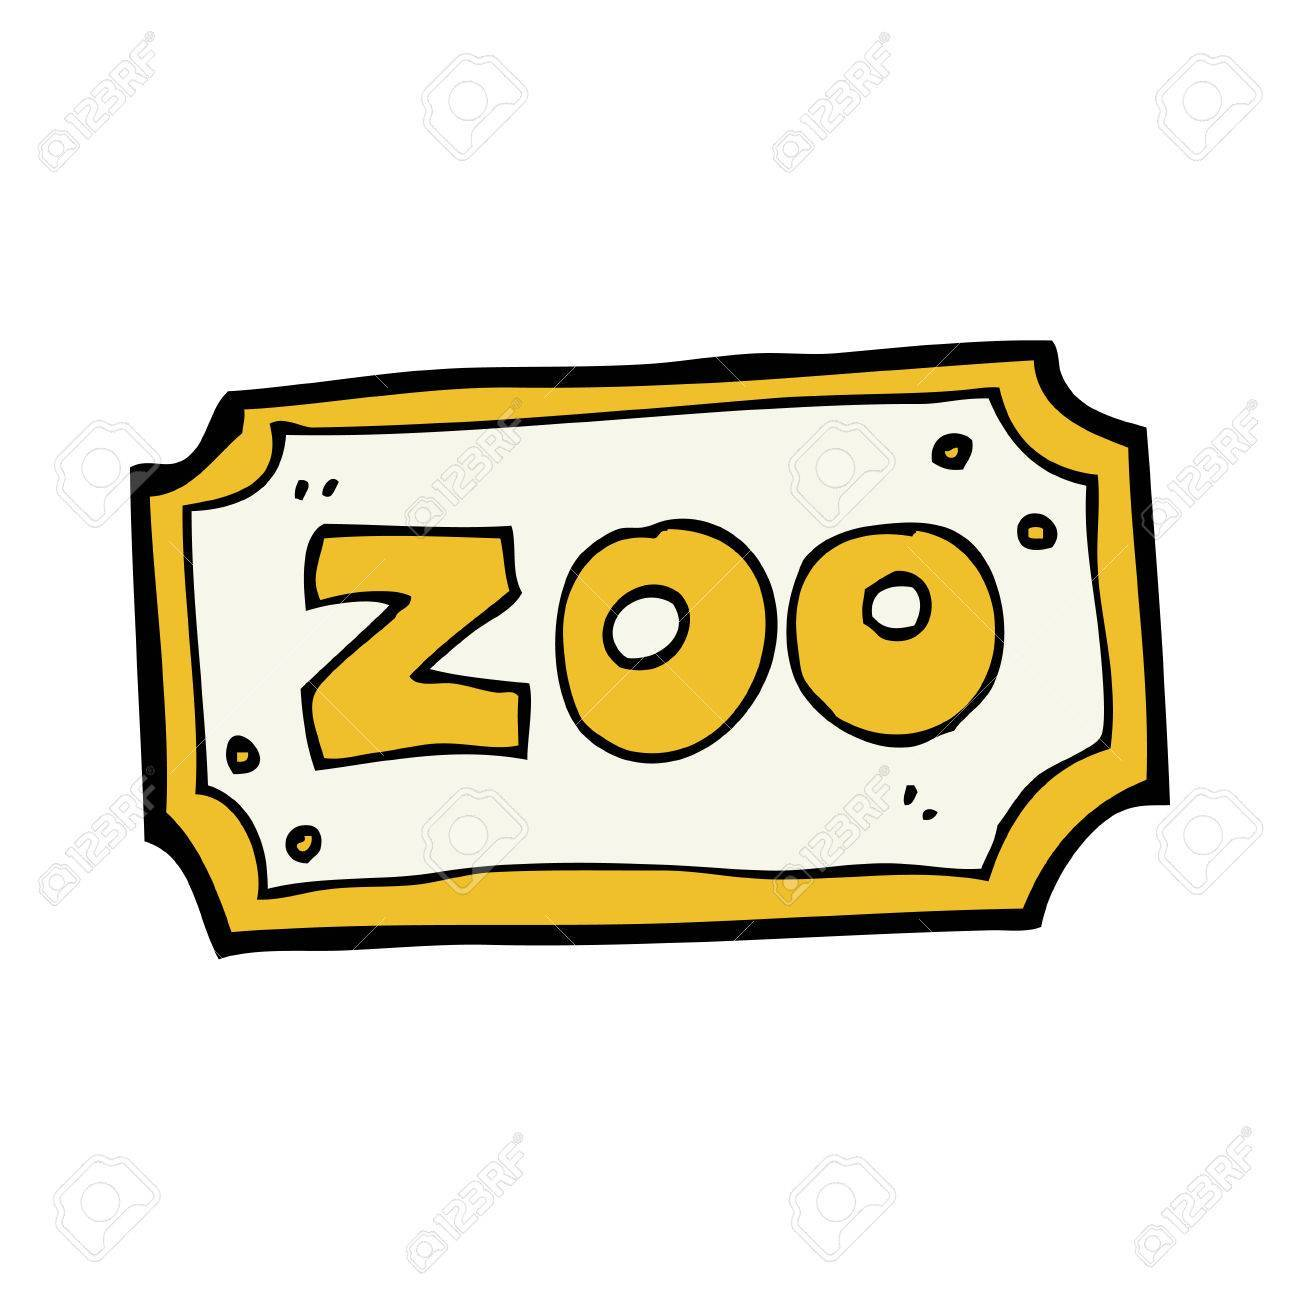 Zoo gift shop sign clipart svg library Cartoon zoo sign » Clipart Portal svg library